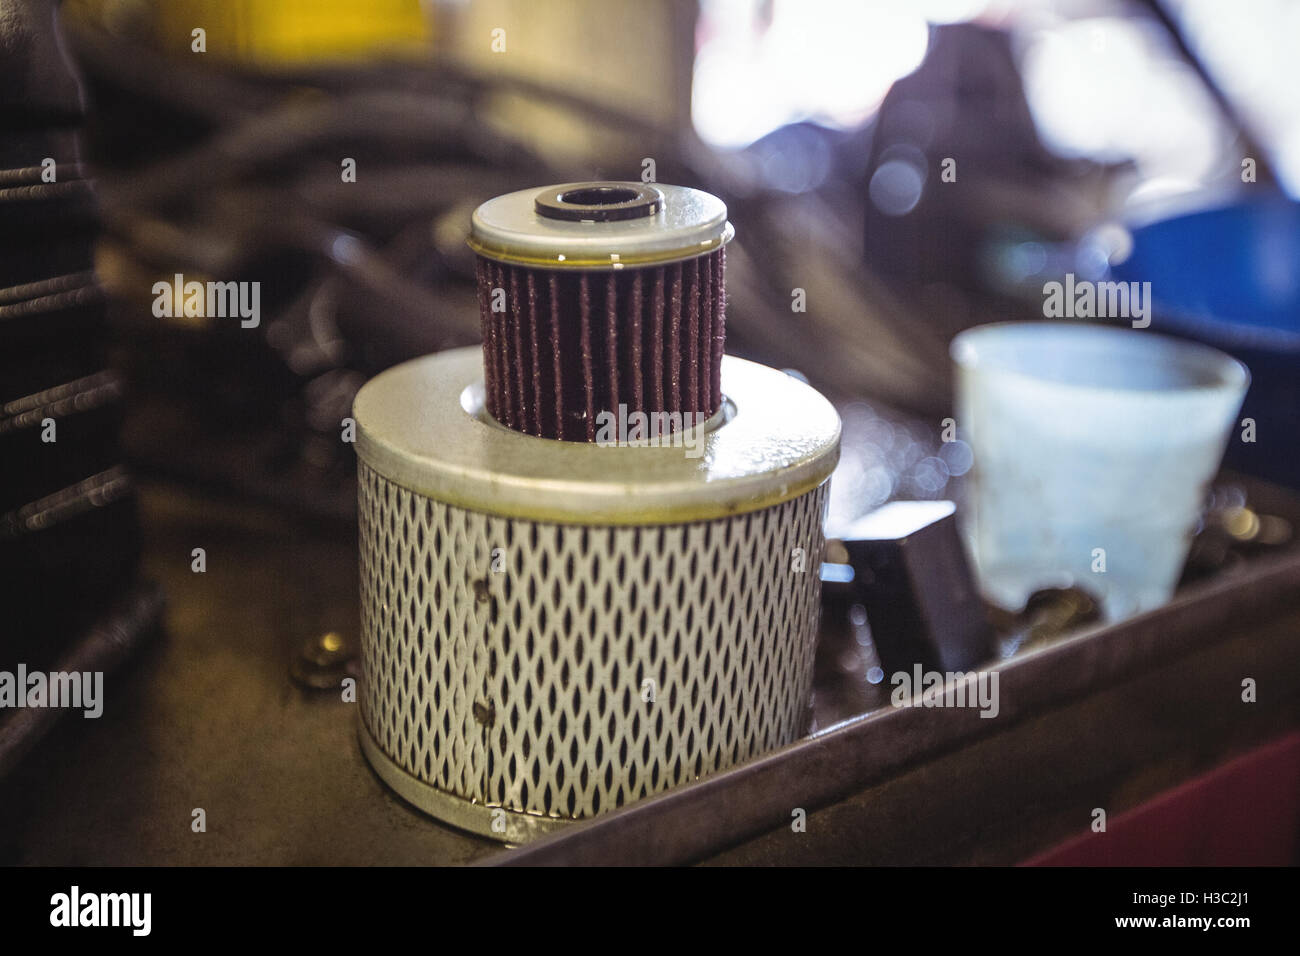 Close-up of oil filters - Stock Image